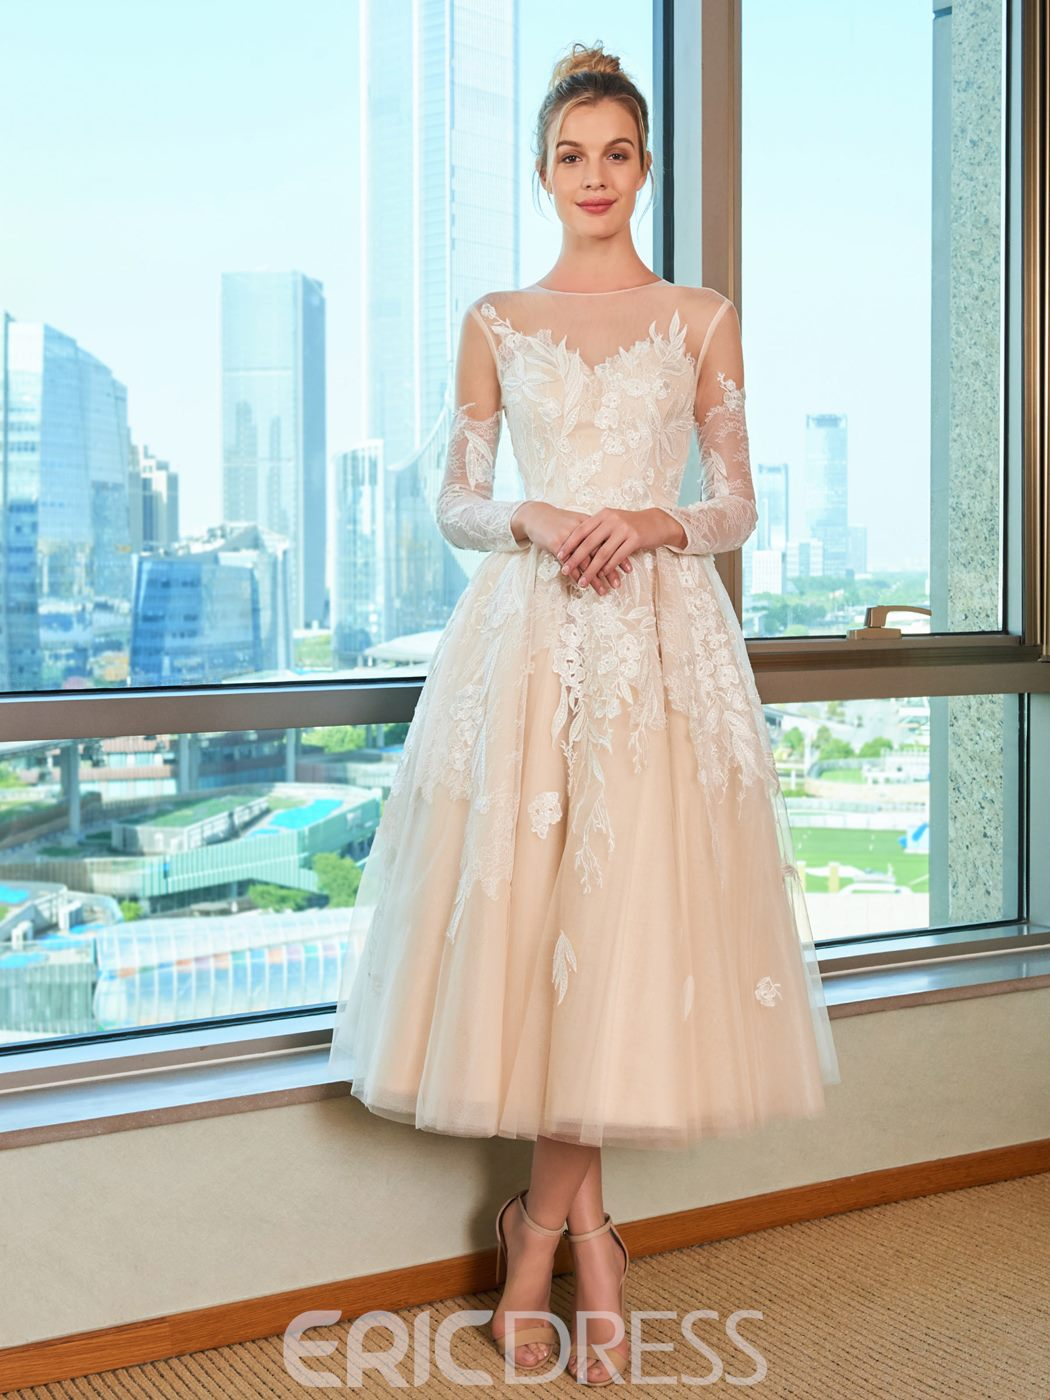 Ericdress Tulle Tea Length Wedding Dress 13297411 - Ericdress.com